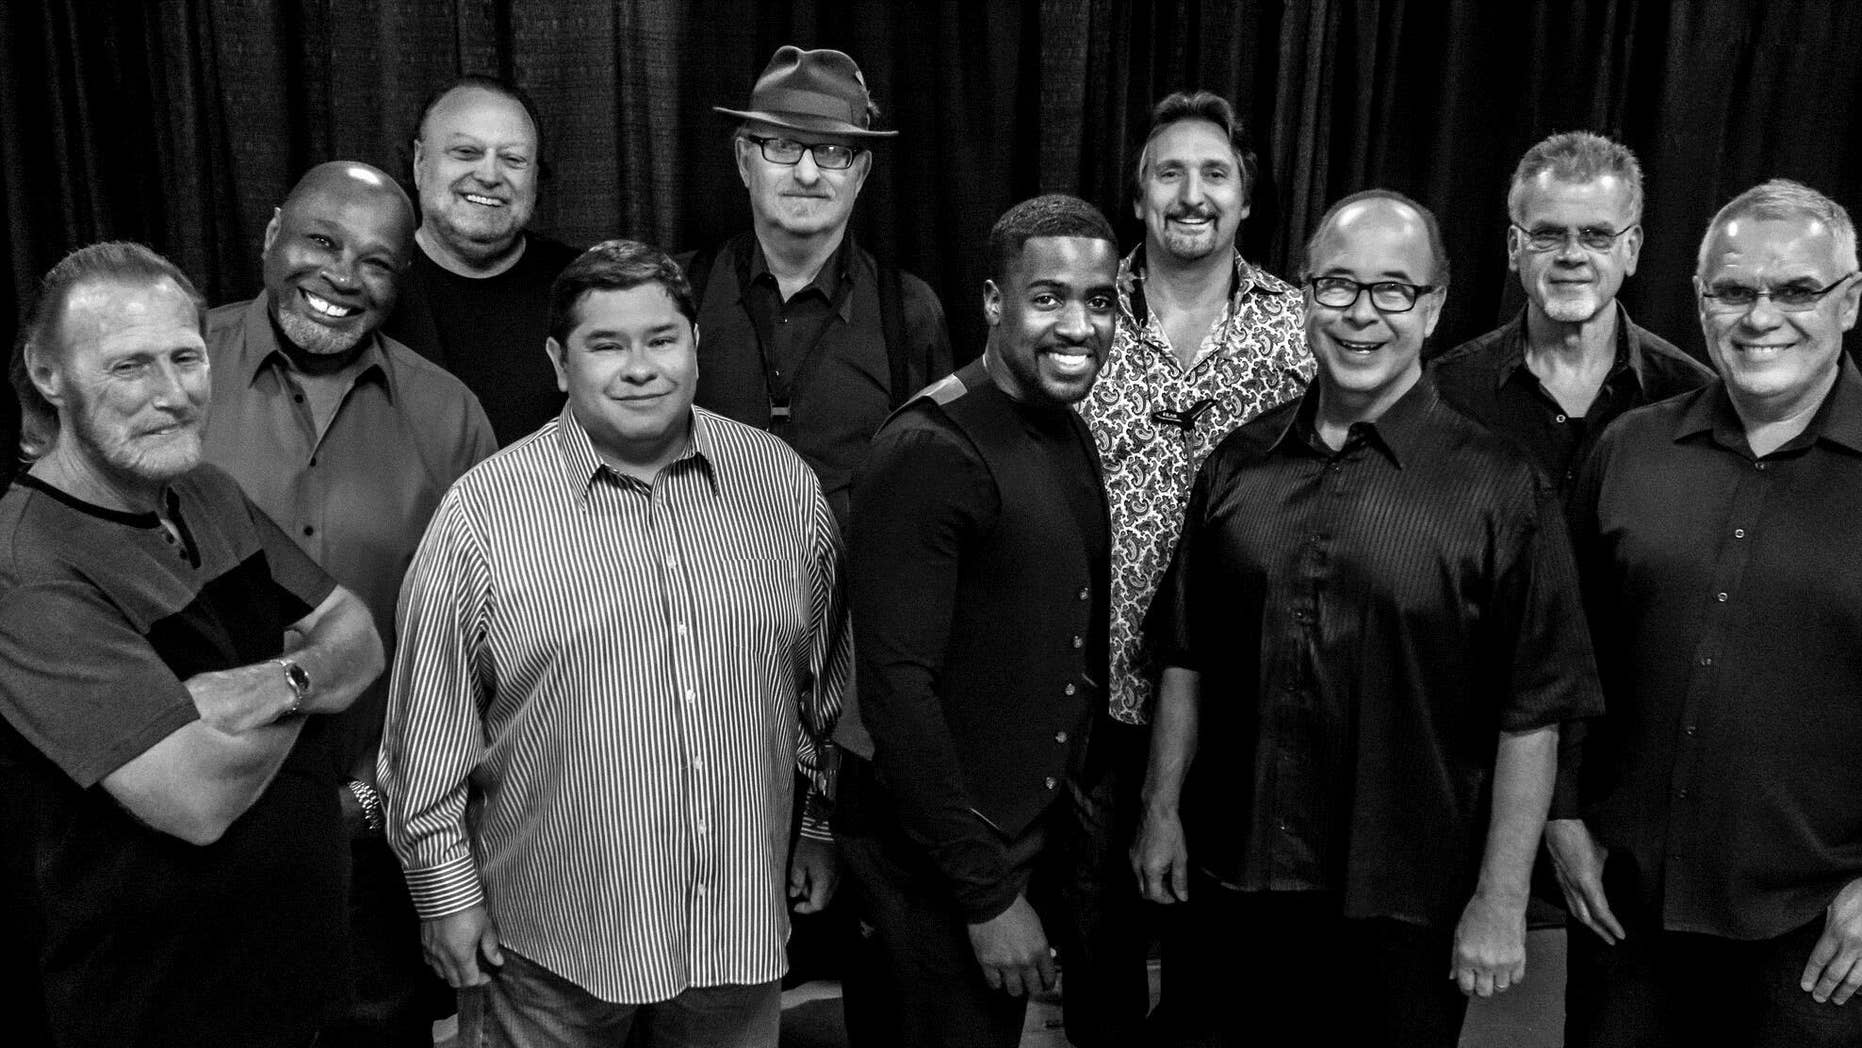 "This Aug. 2016 photo provided by courtesy of Tower of Power/Webster Public Relations, shows the band members from Tower of Power, from left, Rocco Prestia, Roger Smith, Sal Cracchiolo, Adolfo Acosta, Stephen ""Doc"" Kupka, Marcus Scott, Tom E. Politzer, Emilio Castillo, David Garibaldi, and Jerry Cortez."